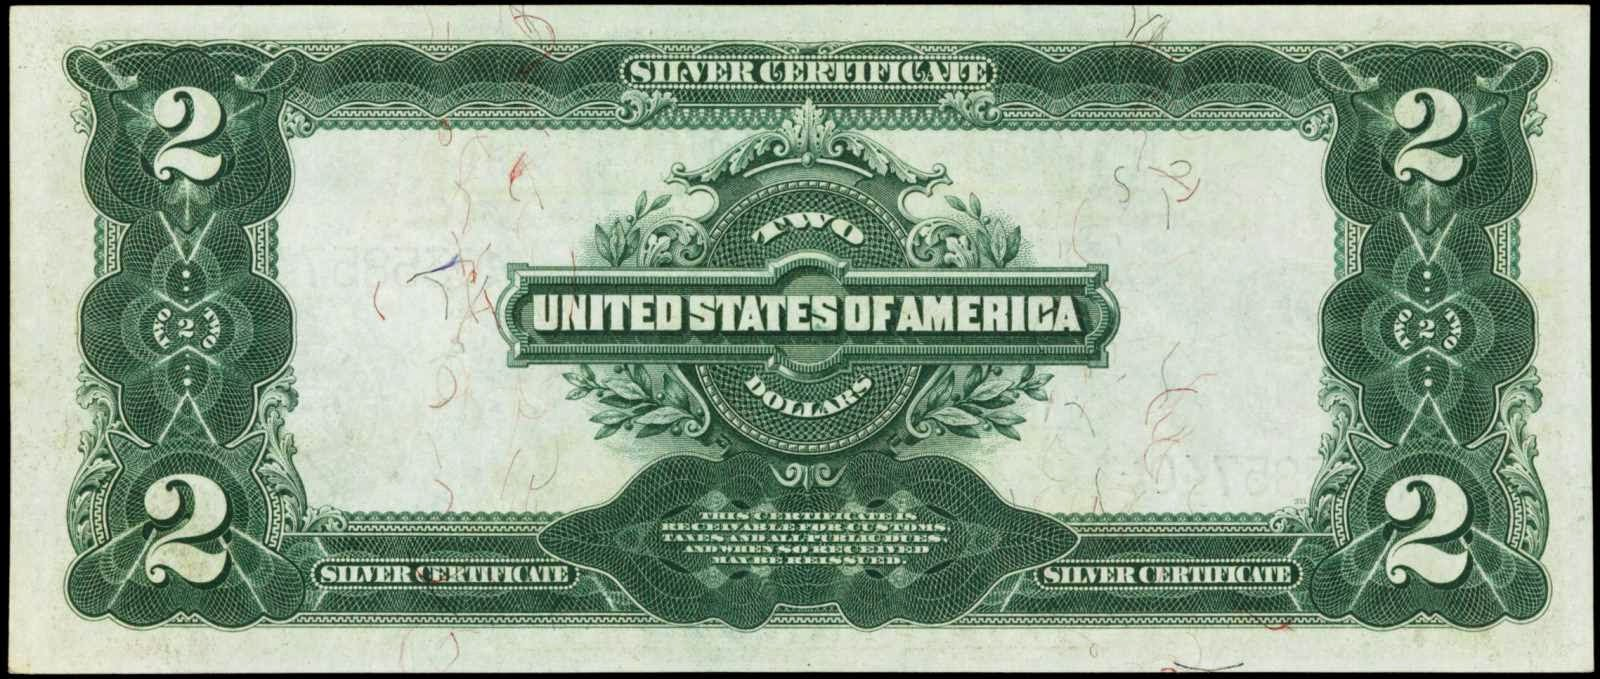 1899 two dollar silver certificateworld banknotes coins 1899 2 silver certificate xflitez Choice Image